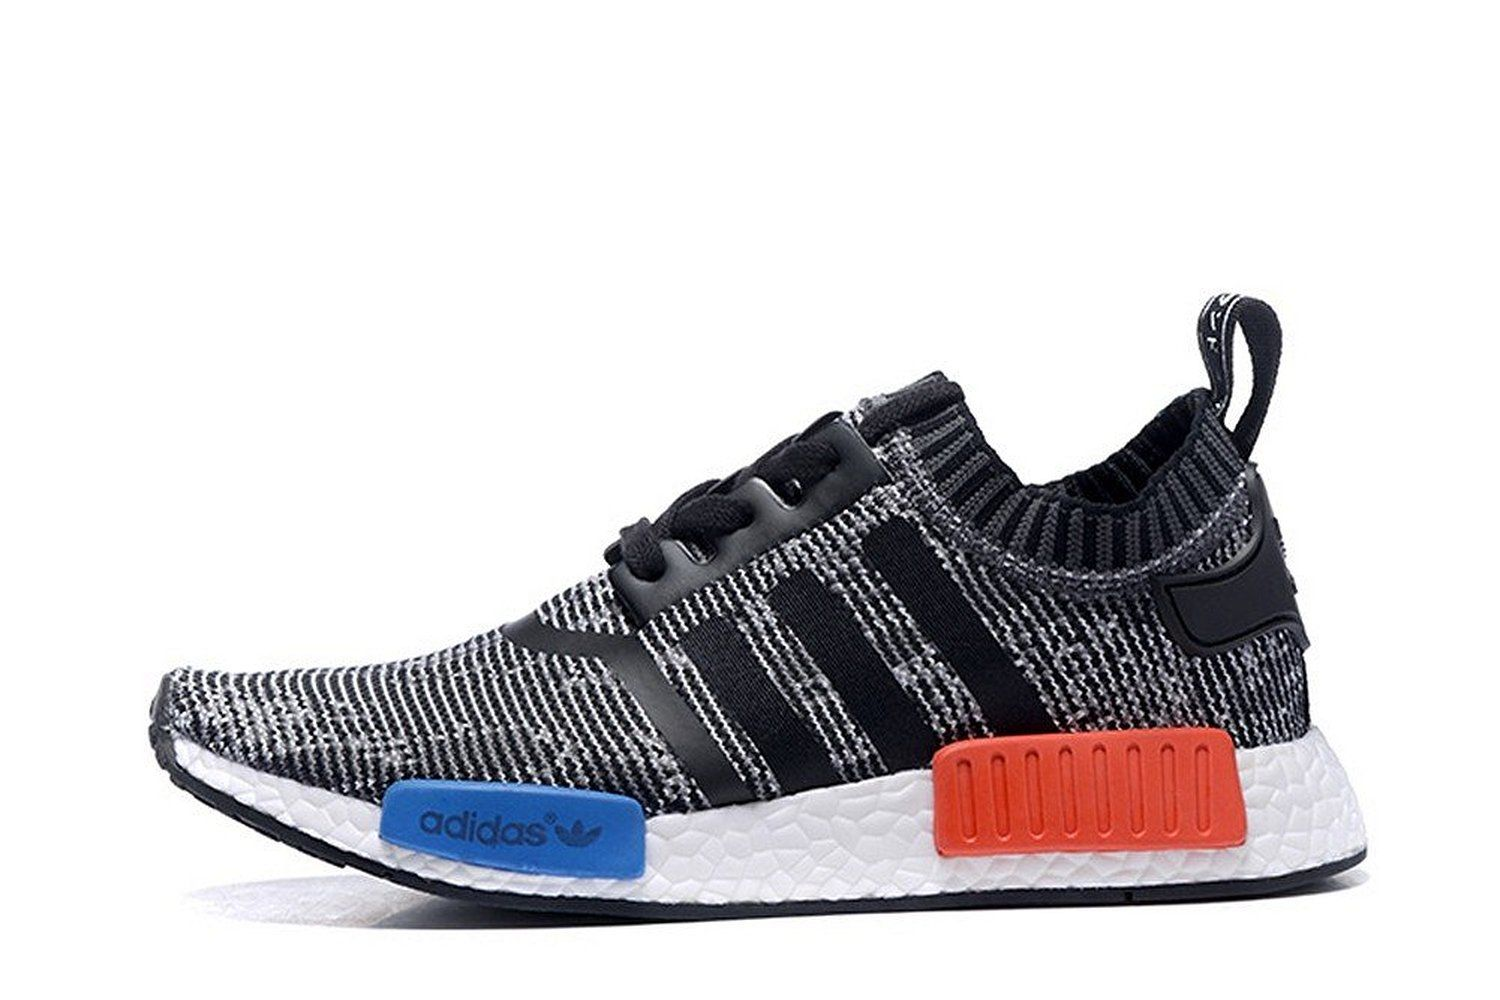 8abc992faf54d Amazon.com: Adidas Originals- NMD Primeknit Shoes mens: Sports ...